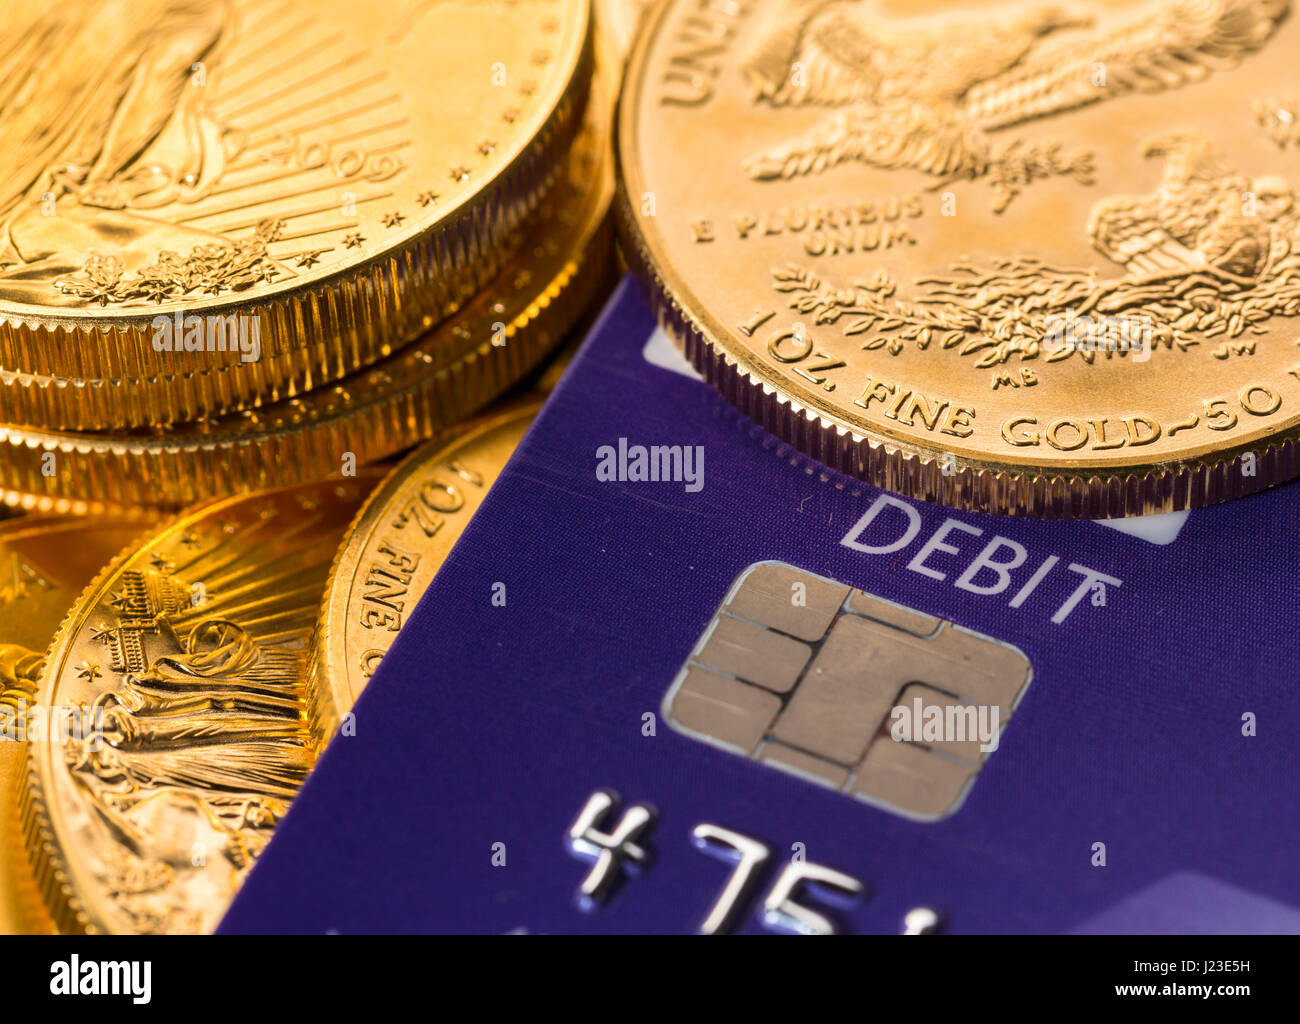 American Gold Eagle 50 dollar gold bullion coins with credit debit card - Stock Image